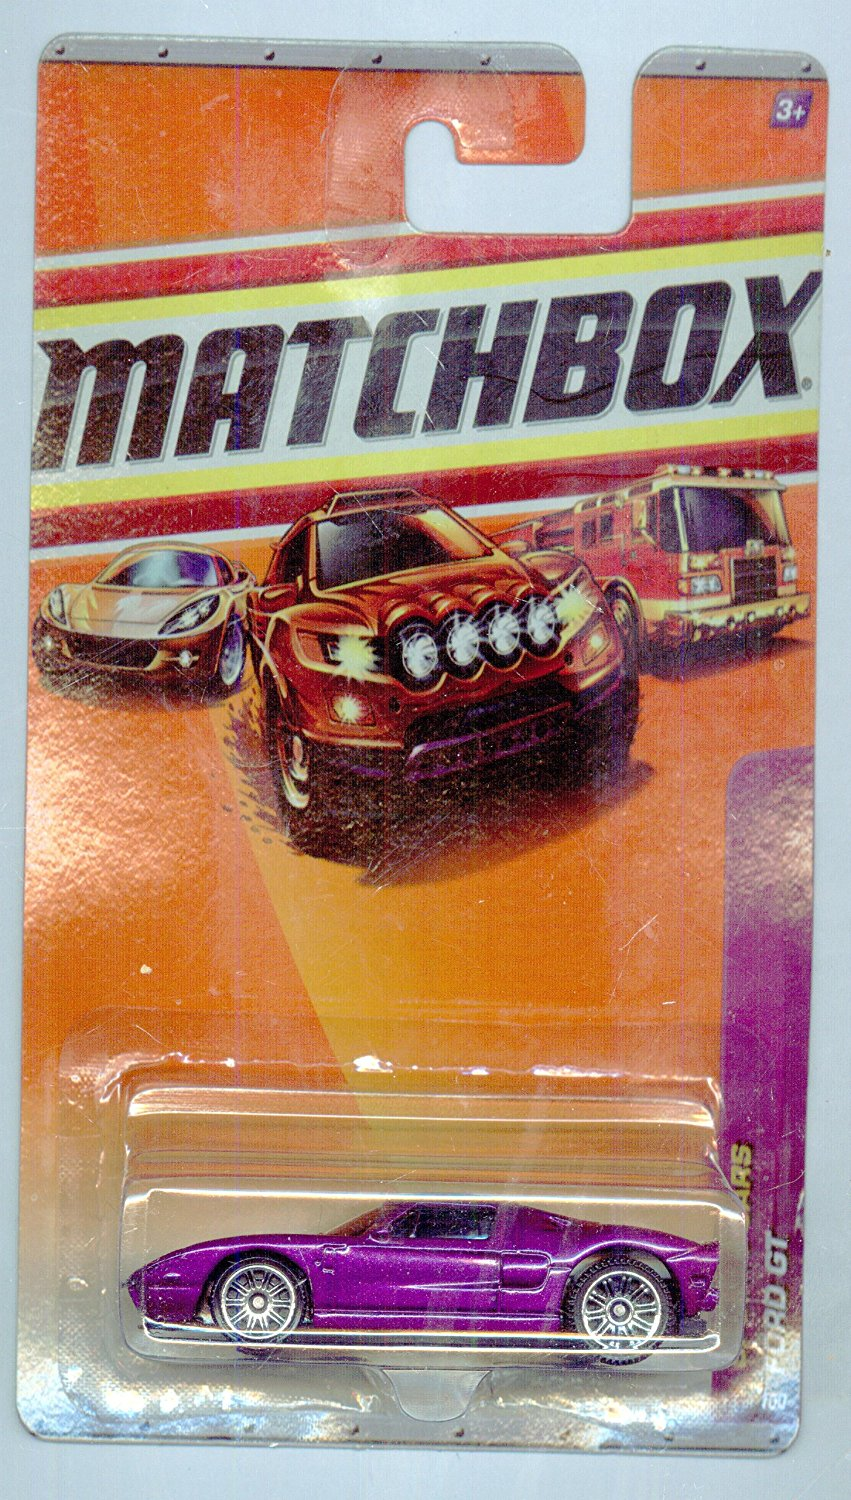 2010-13 100 Sports Cars PURPLE Ford GT 1:64 Scale, Matchbox By Matchbox by